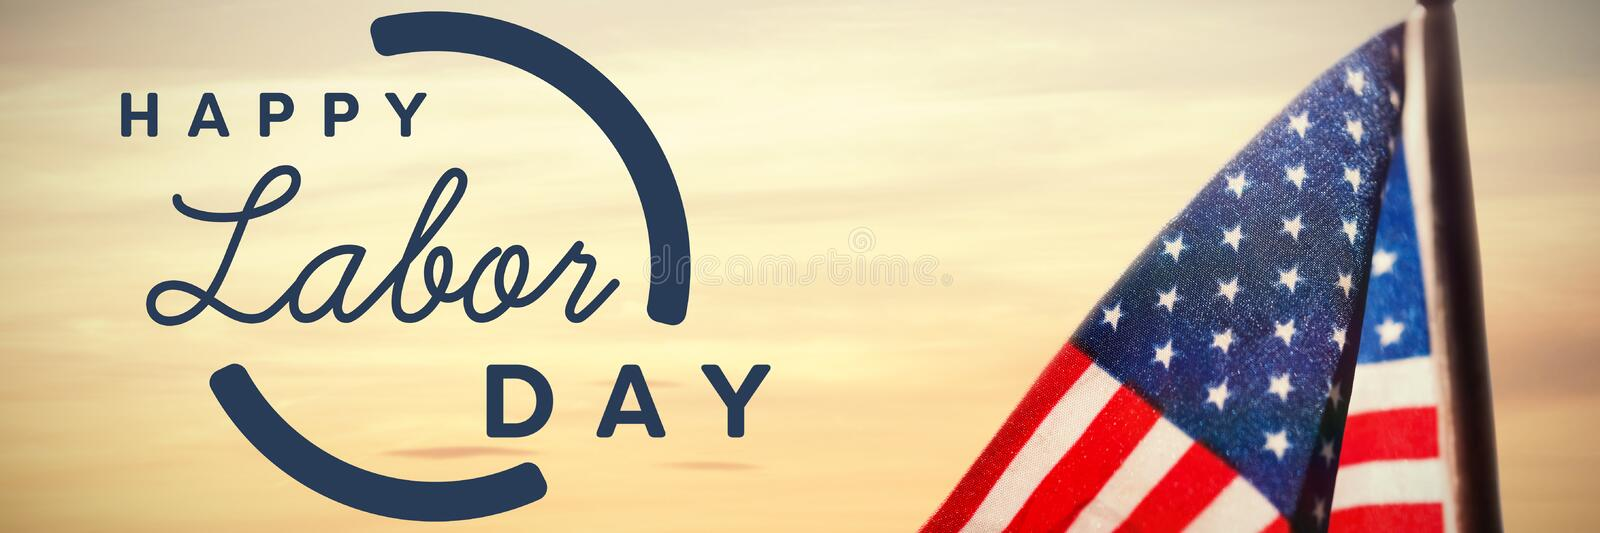 Composite image of digital composite image of happy labor day text with blue outline royalty free stock image